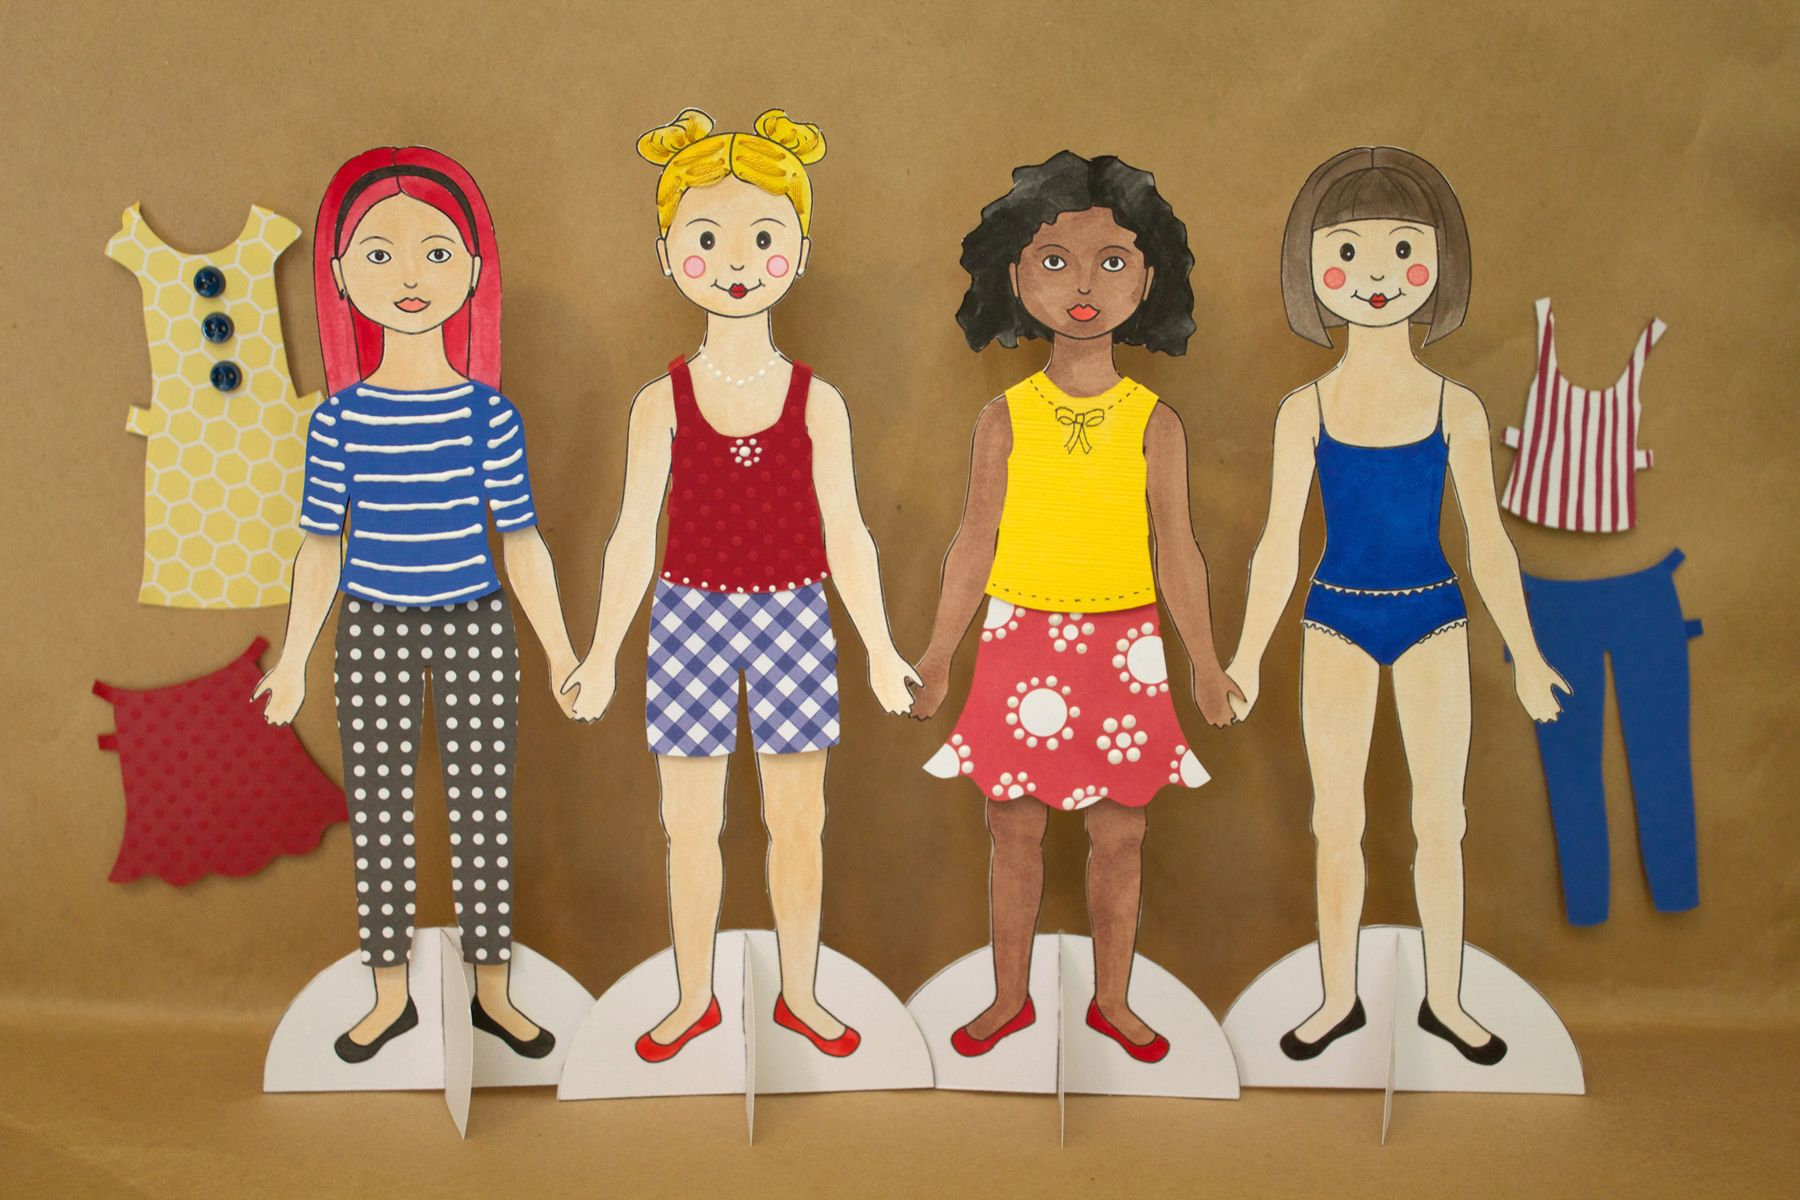 How To Make Paper Dolls Ehow Paper Dolls Diy Paper Dolls Paper Doll Making